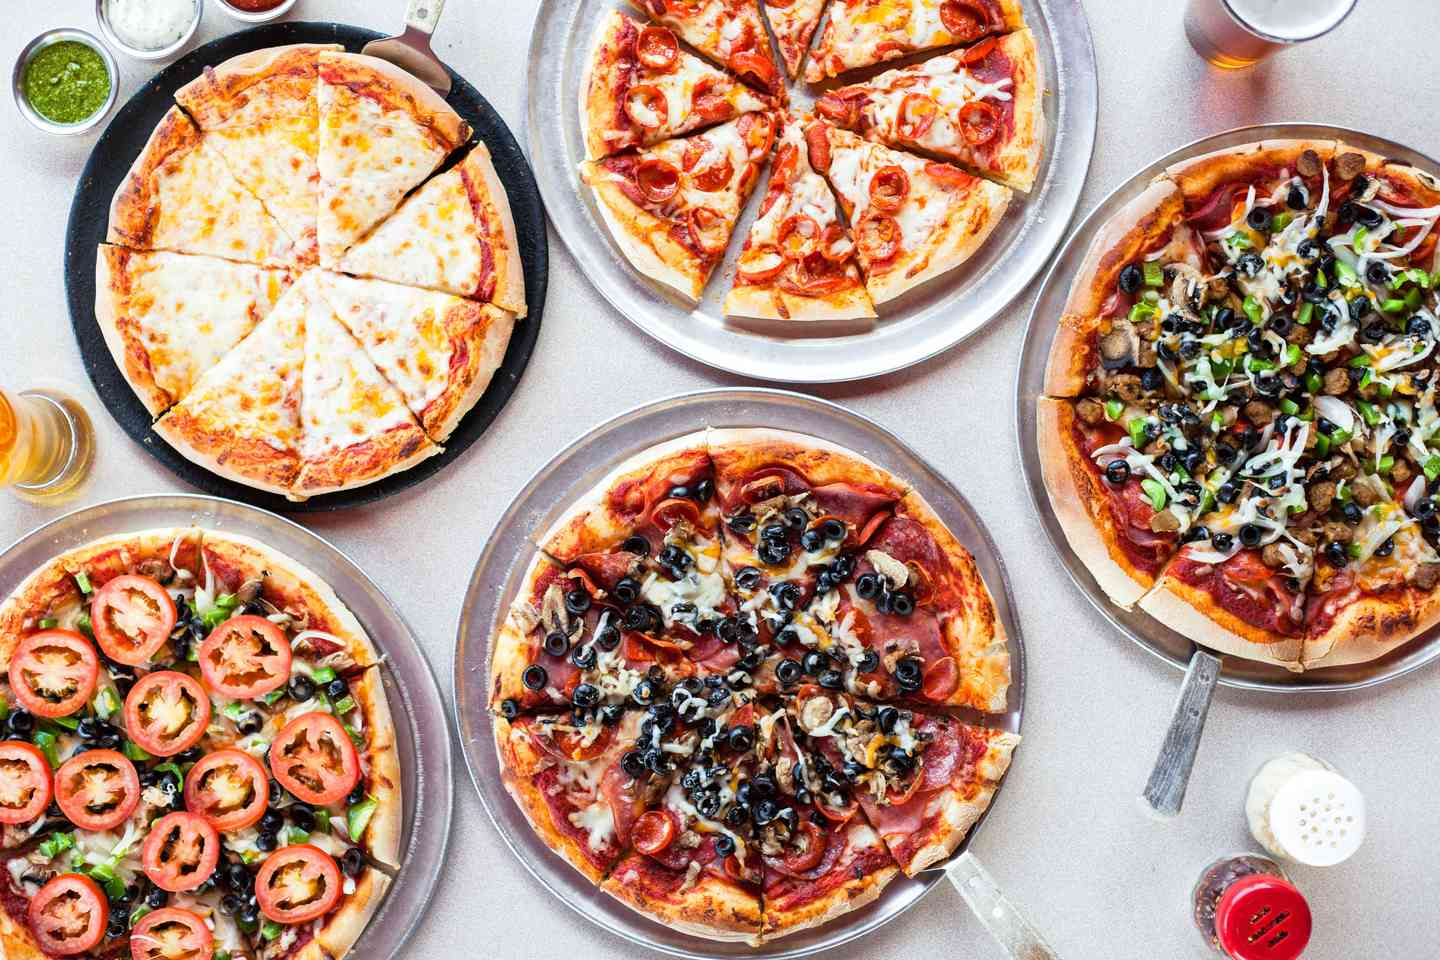 group of pizzas